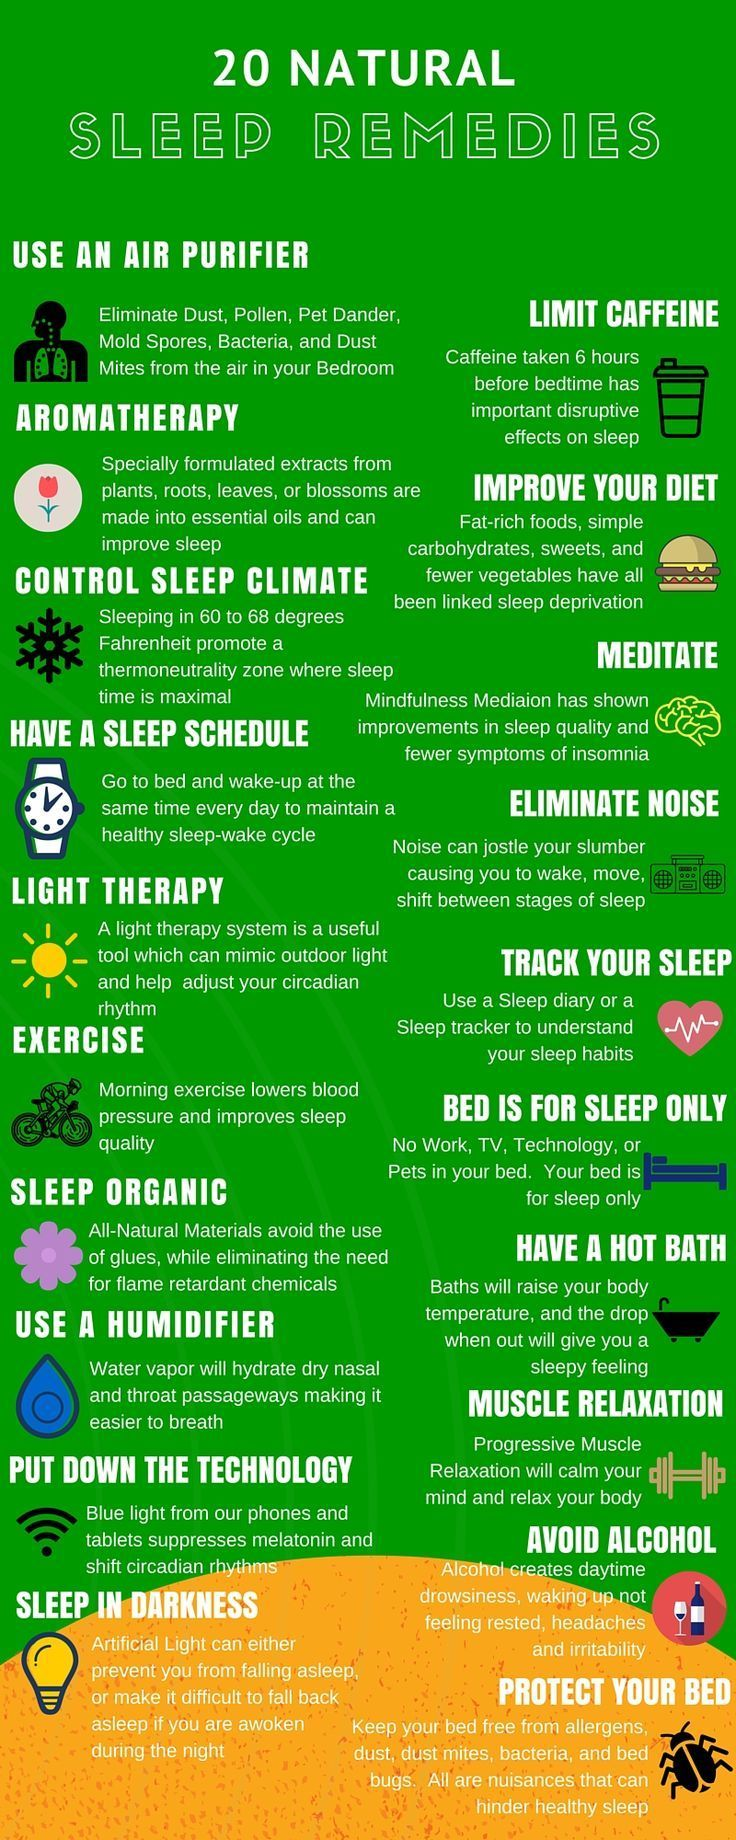 Ready to get a good night's sleep naturally? Here's how!